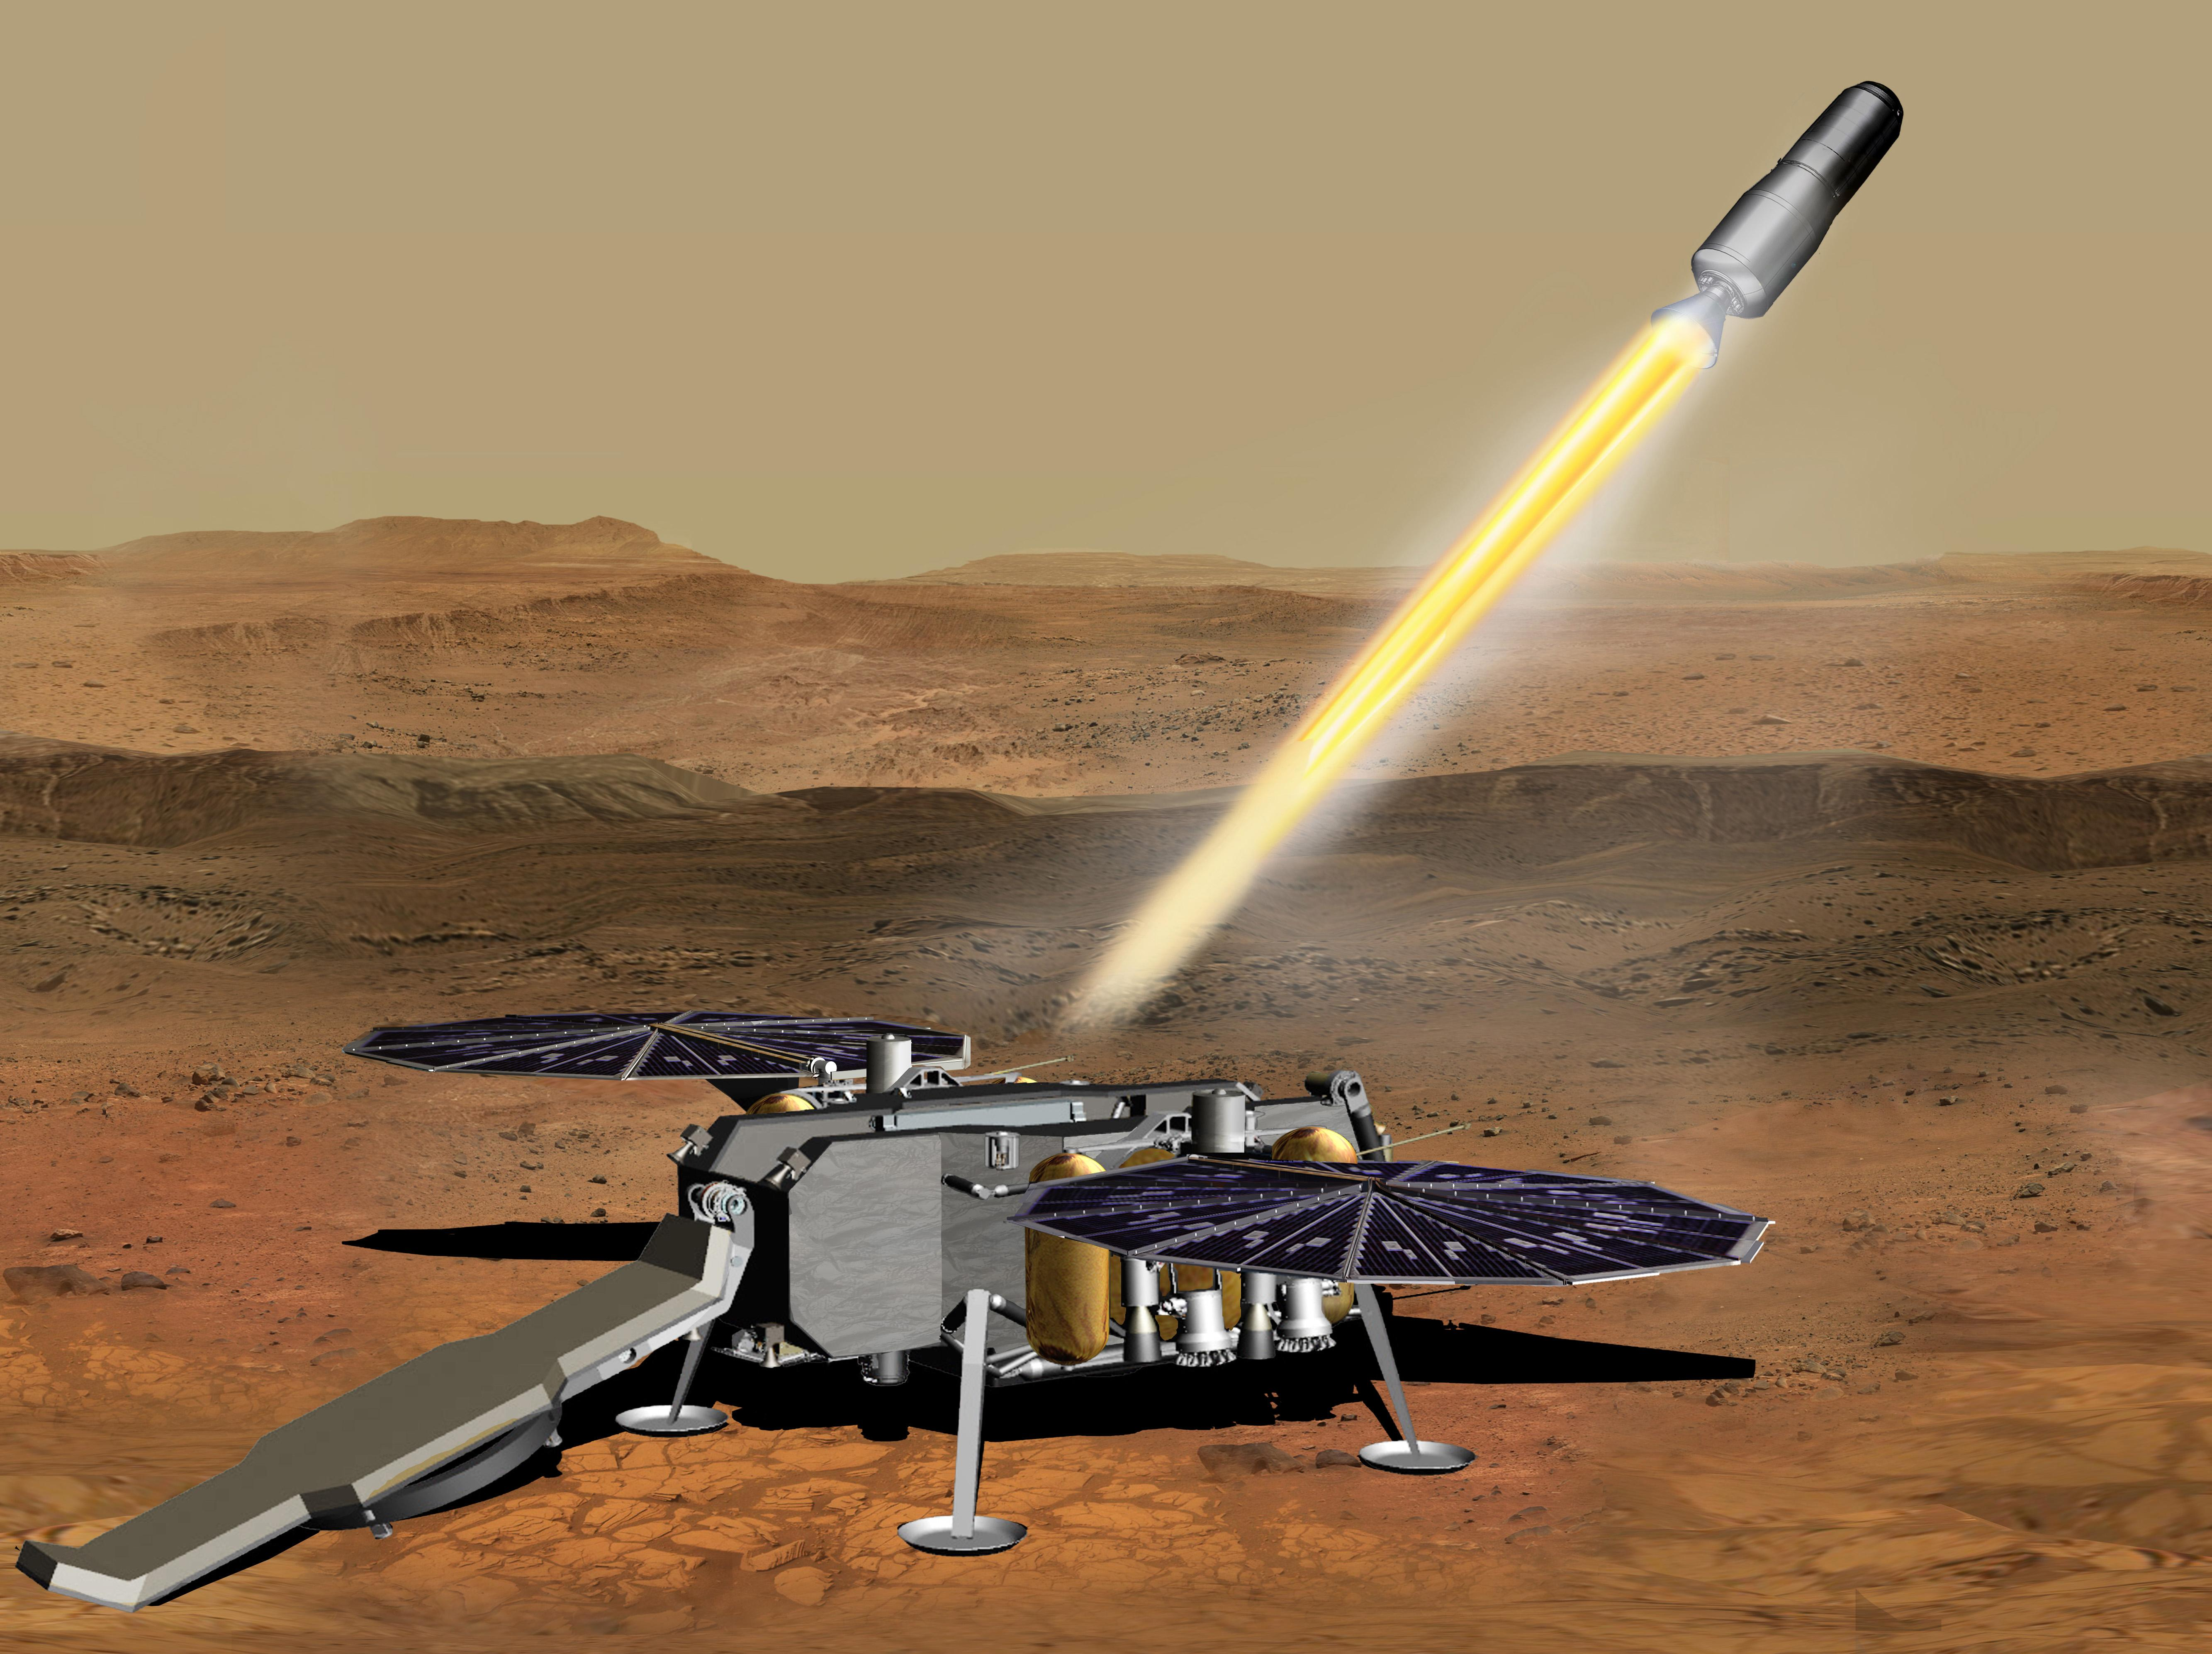 This illustration shows a concept of how the NASA Mars Ascent Vehicle could be launched from the surface of Mars in one step of the Mars sample return mission.